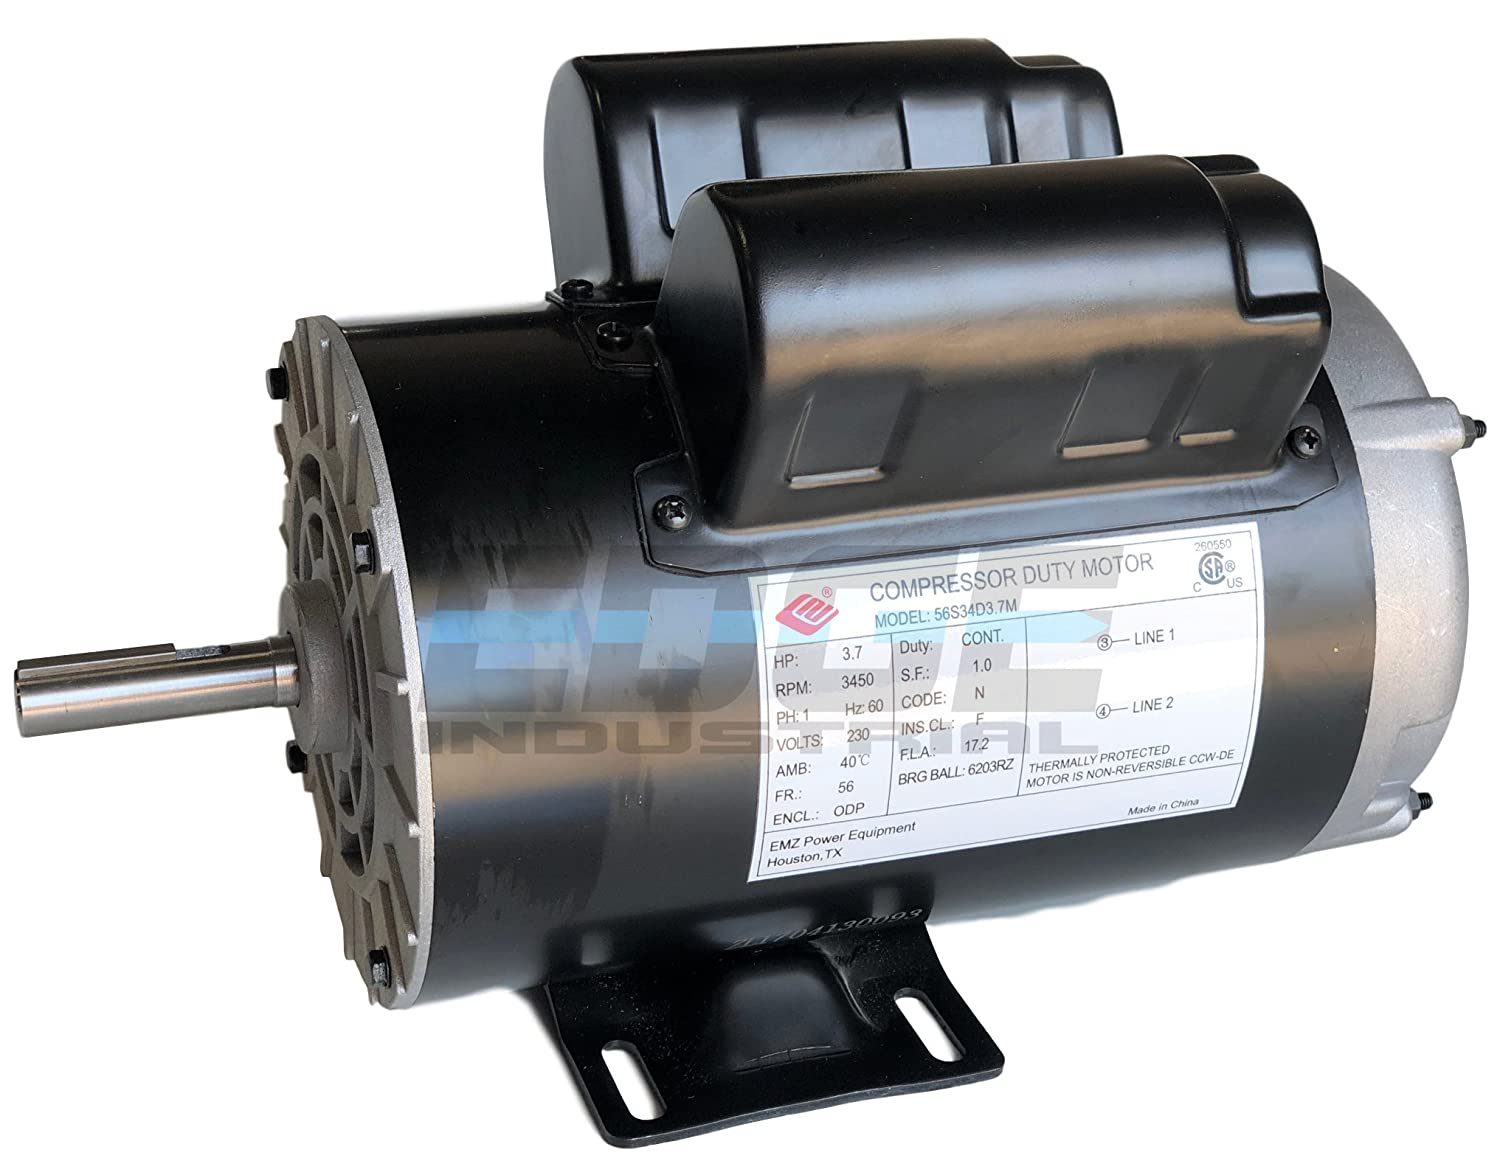 "NEW 3.7HP COMPRESSOR DUTY ELECTRIC MOTOR, 56 FRAME, 3450 RPM, 5/8"" SHAFT DIAMETER, NEMA RATED MOTOR, REPLACES 5HP SPL MOTORS RATED 15-17AMPS"